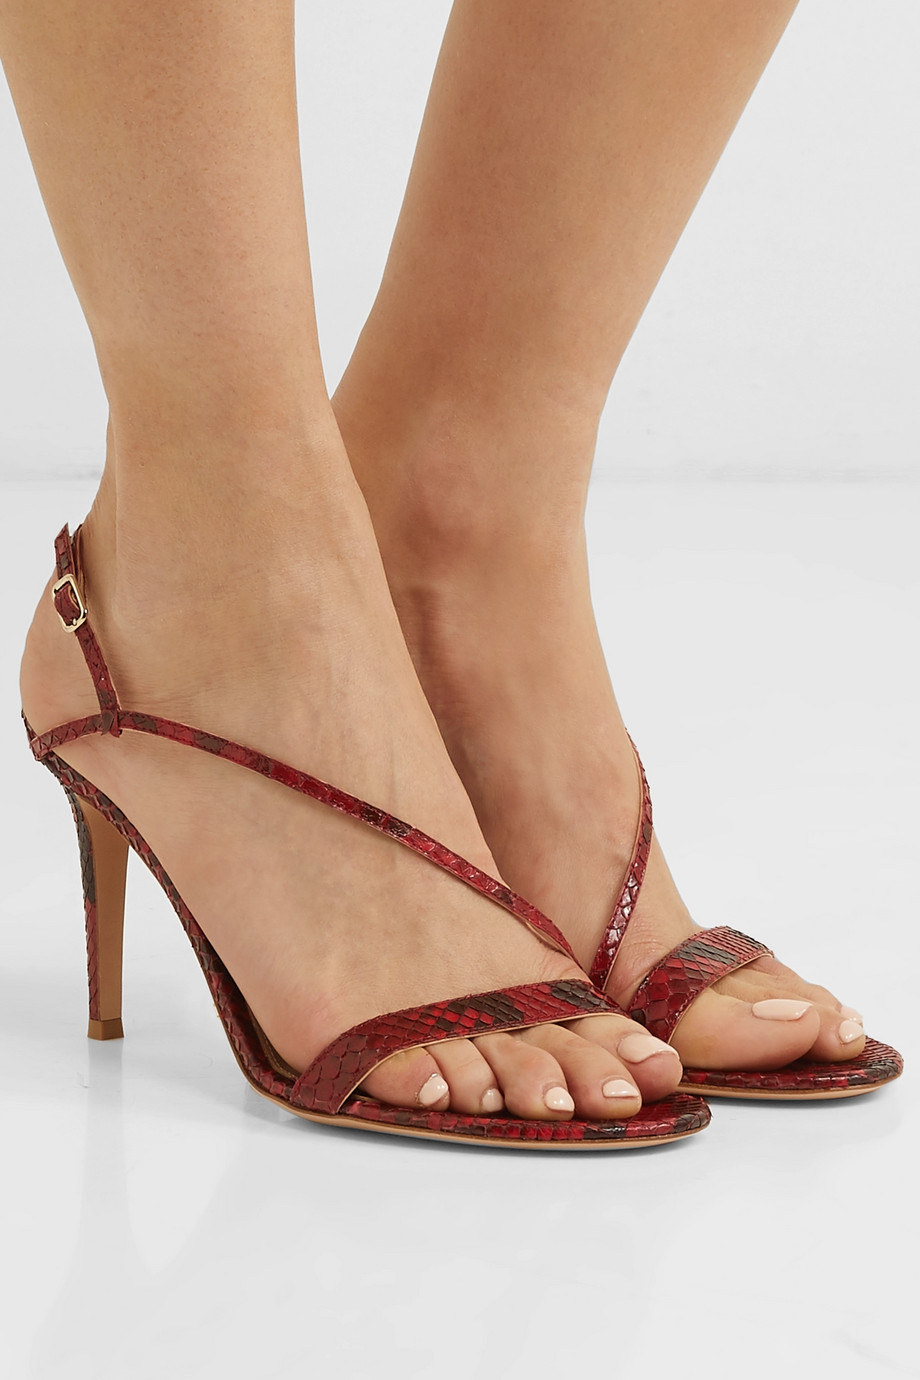 Gianvito Rossi 85 python slingback sandals